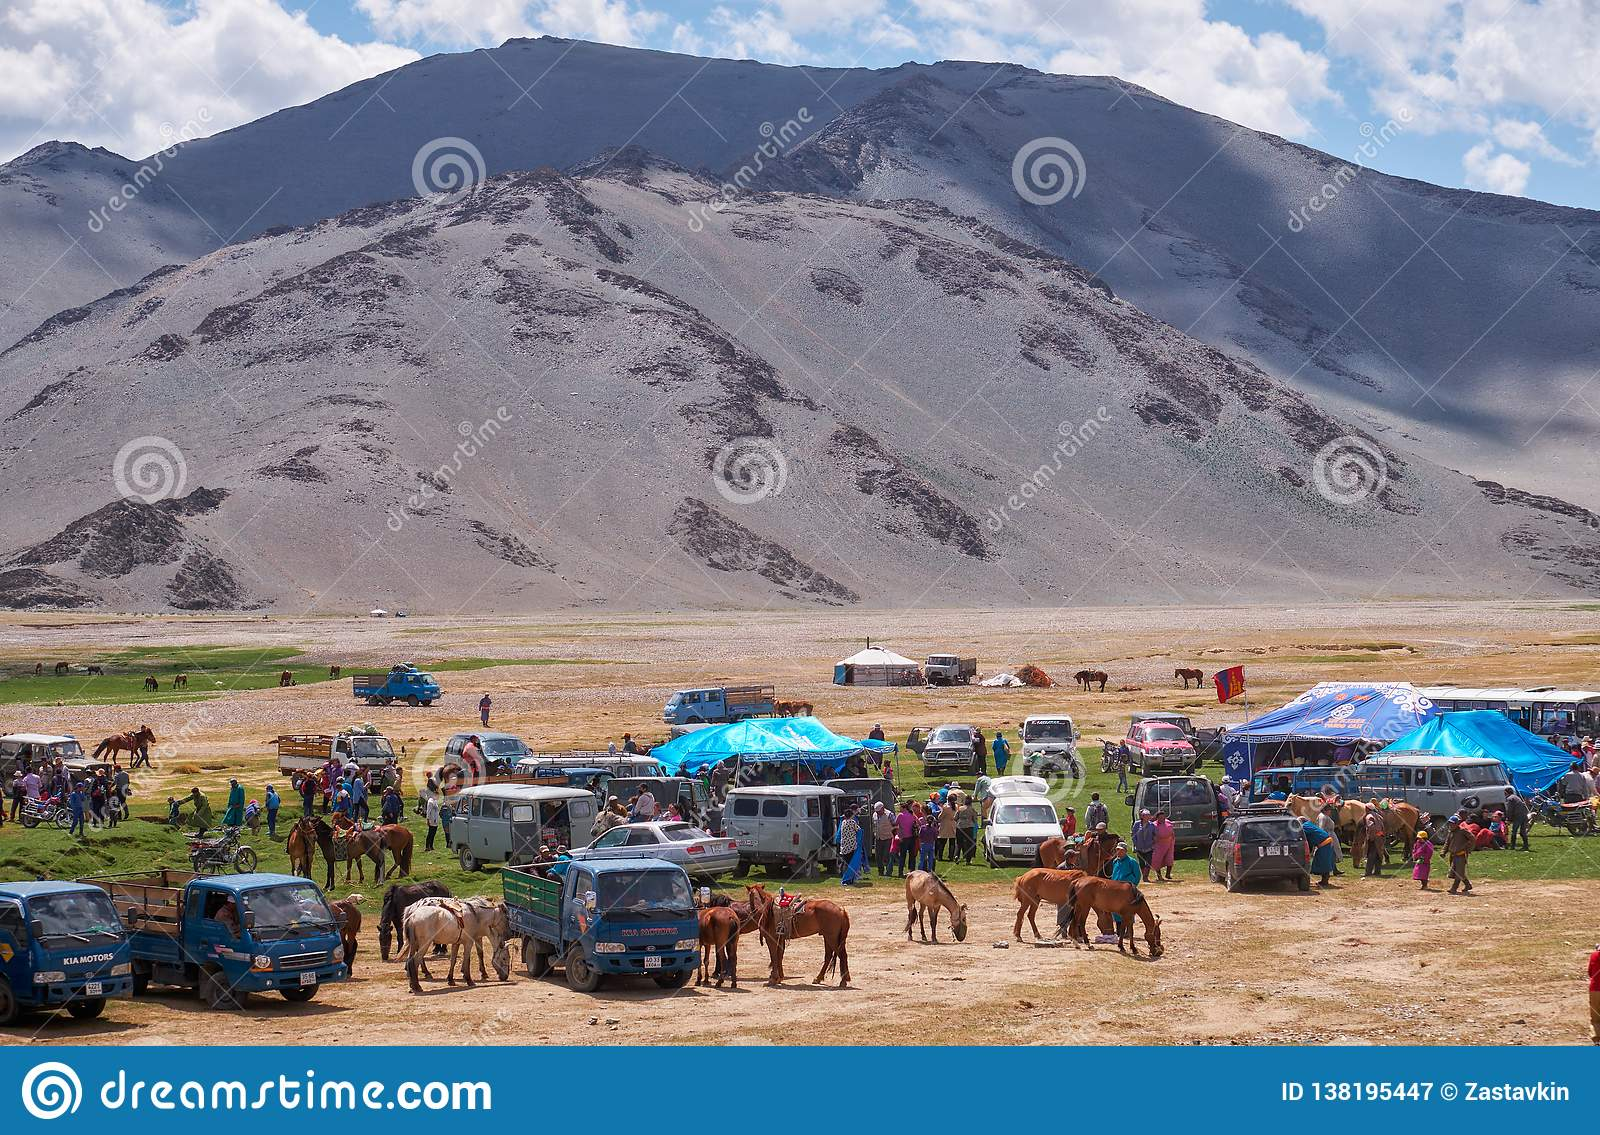 mongolian-nomad-camp-guests-came-to-nati